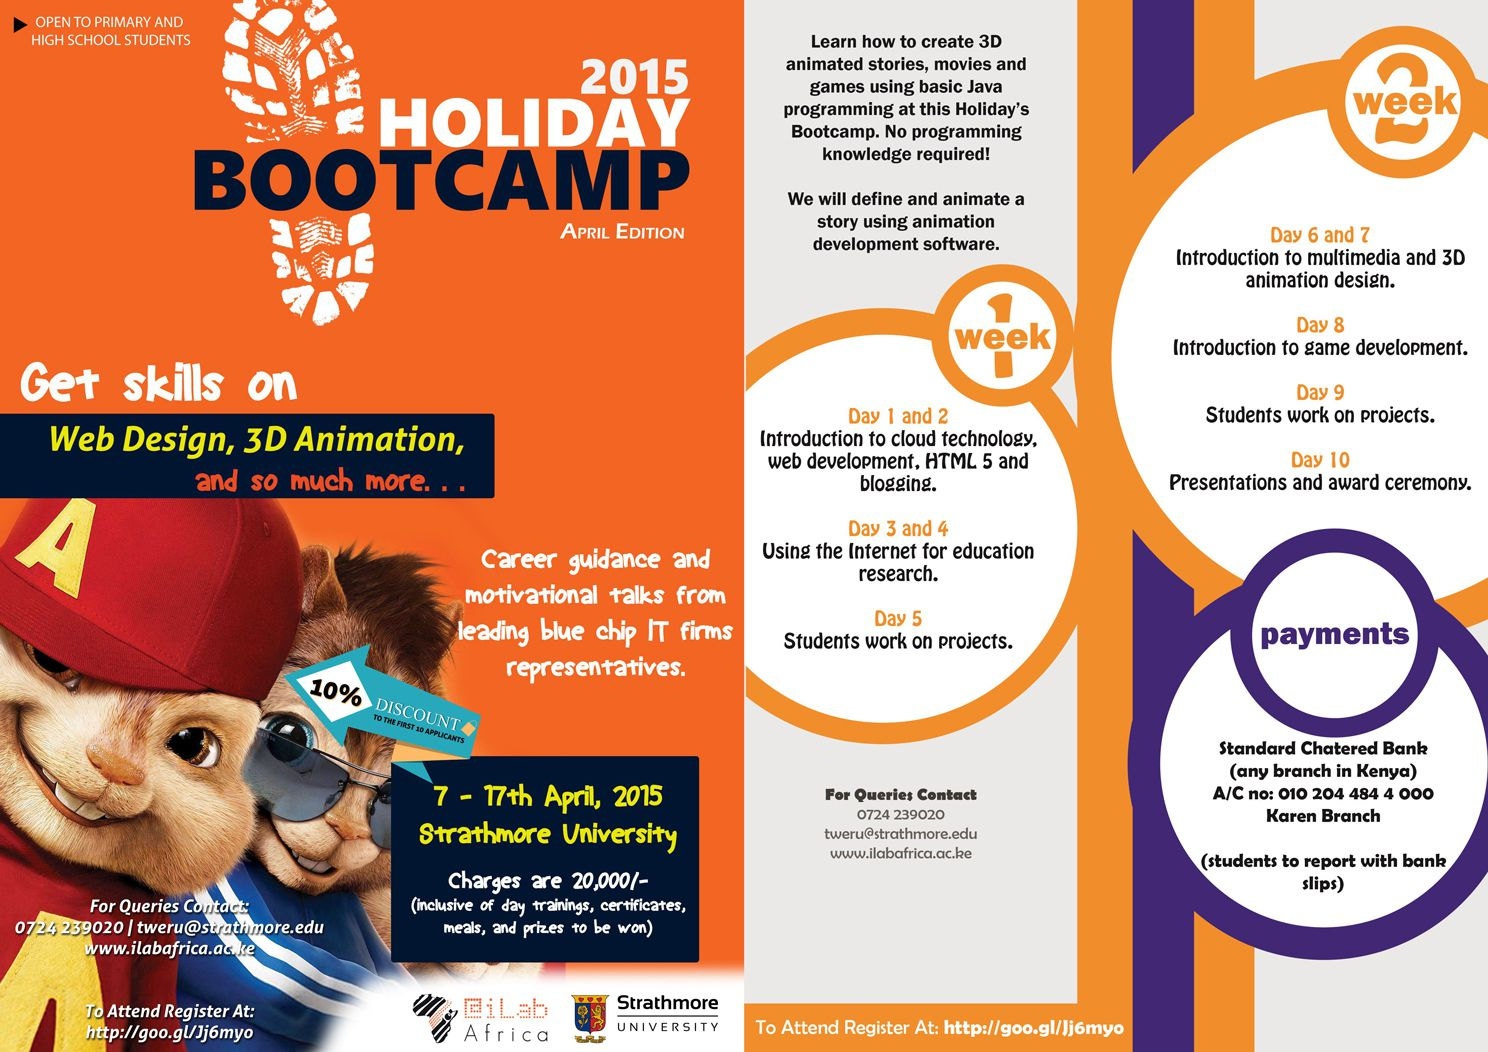 [image] Details about the @iLabAfrica upcoming 9-day Holiday Boot Camp